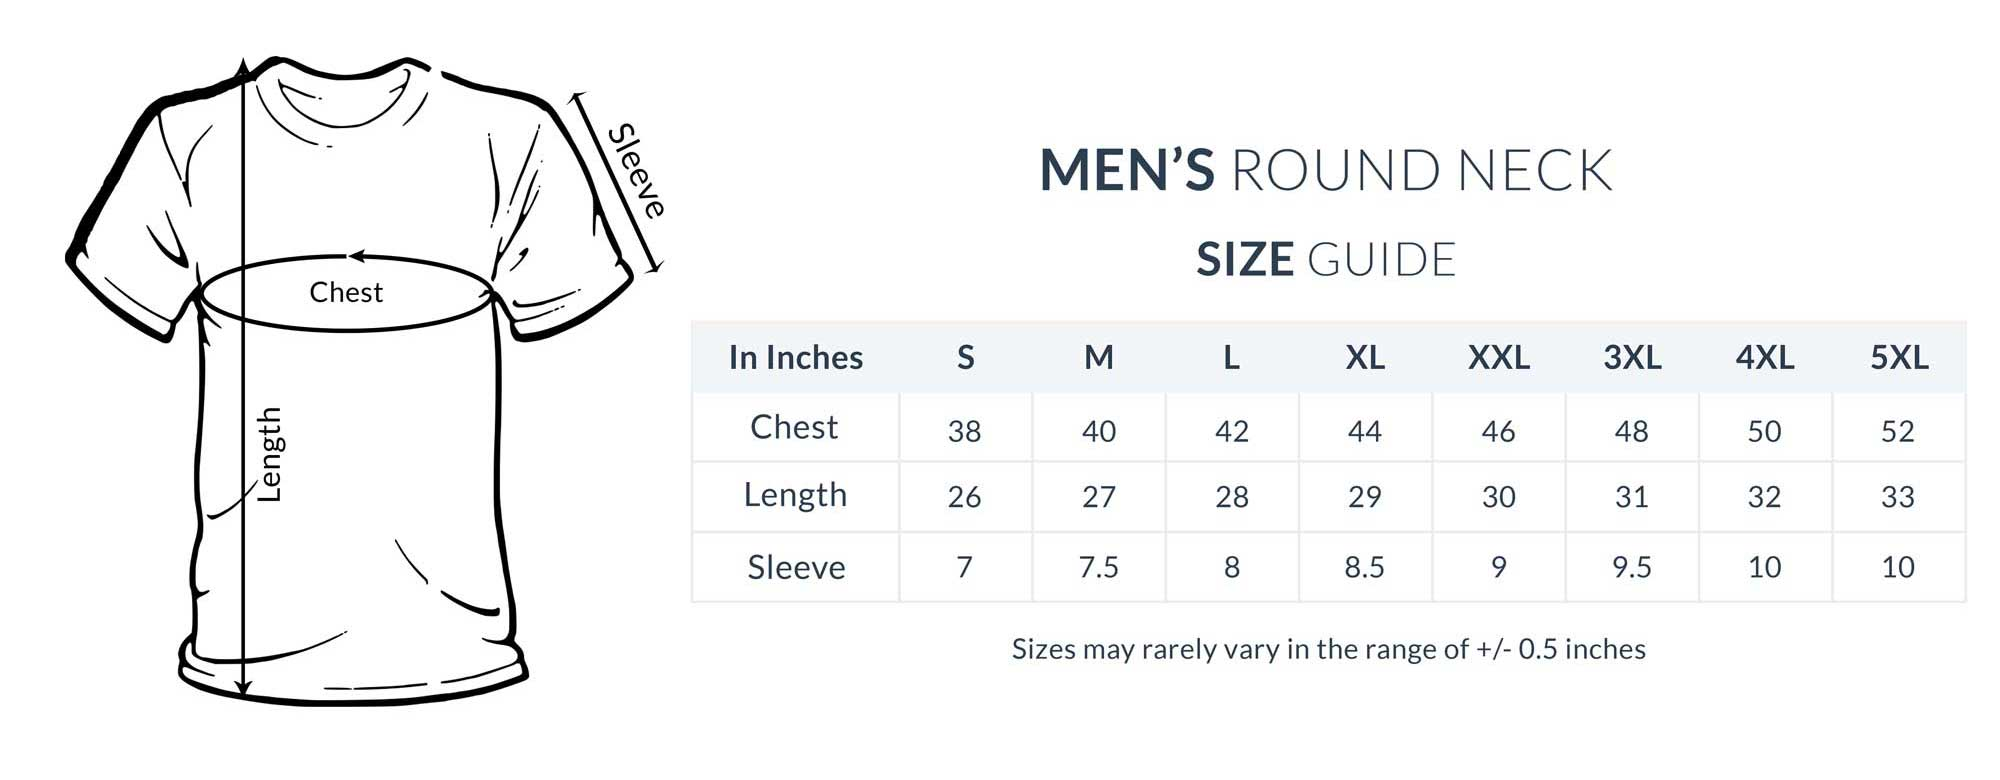 Mytscart Size Guide